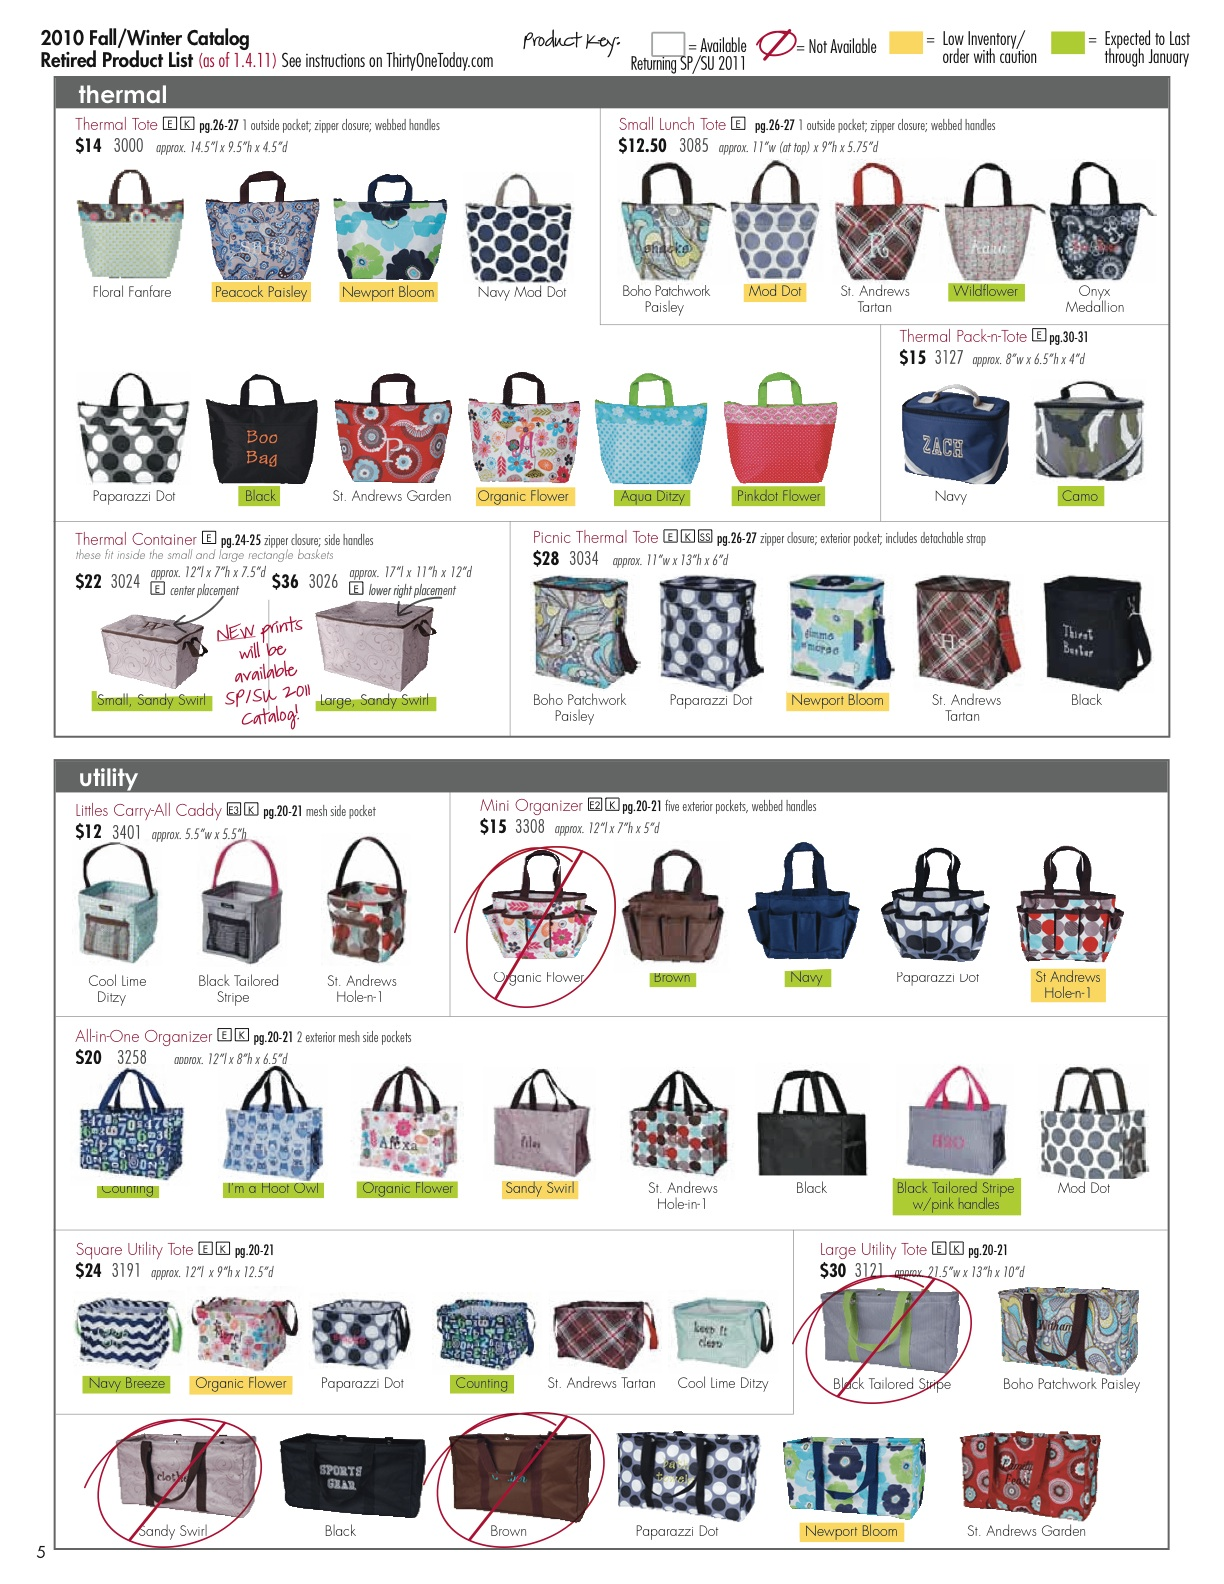 Personalized Bags Totes And Gifts 2010 Retired Products Change To Thermal Tote Event Order Date